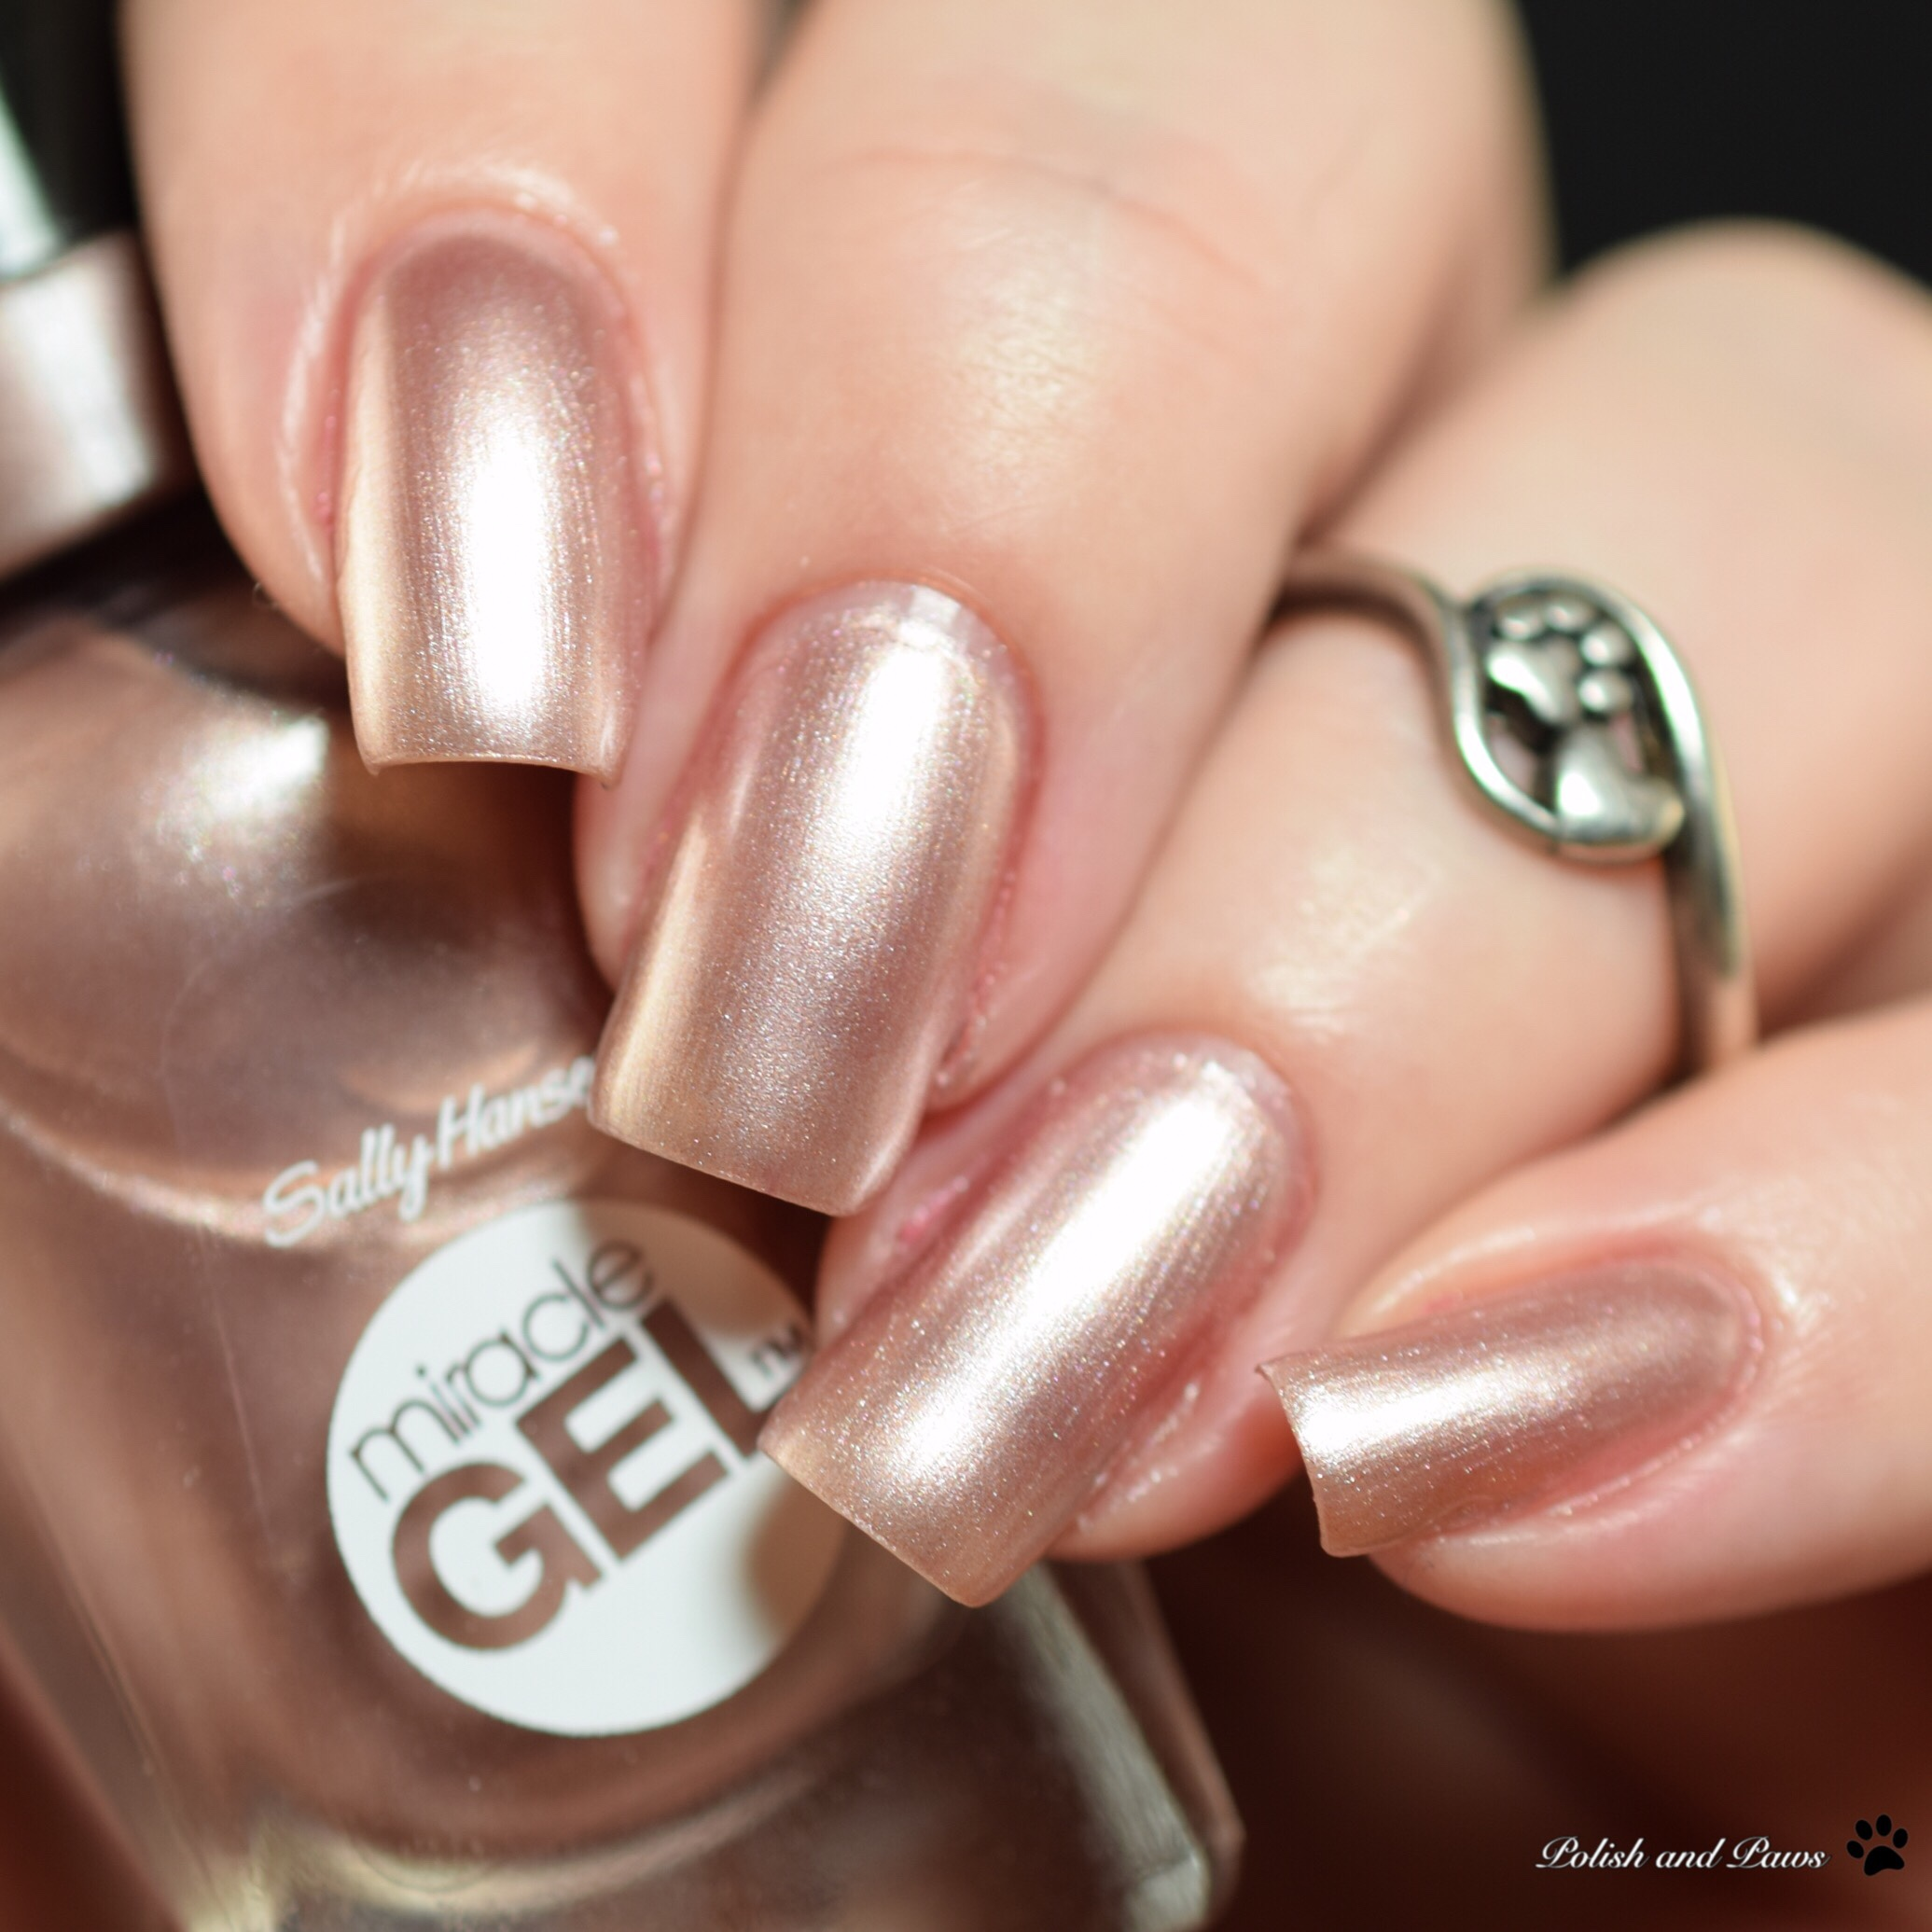 Sally Hansen Miracle Gel Out of this Pearl